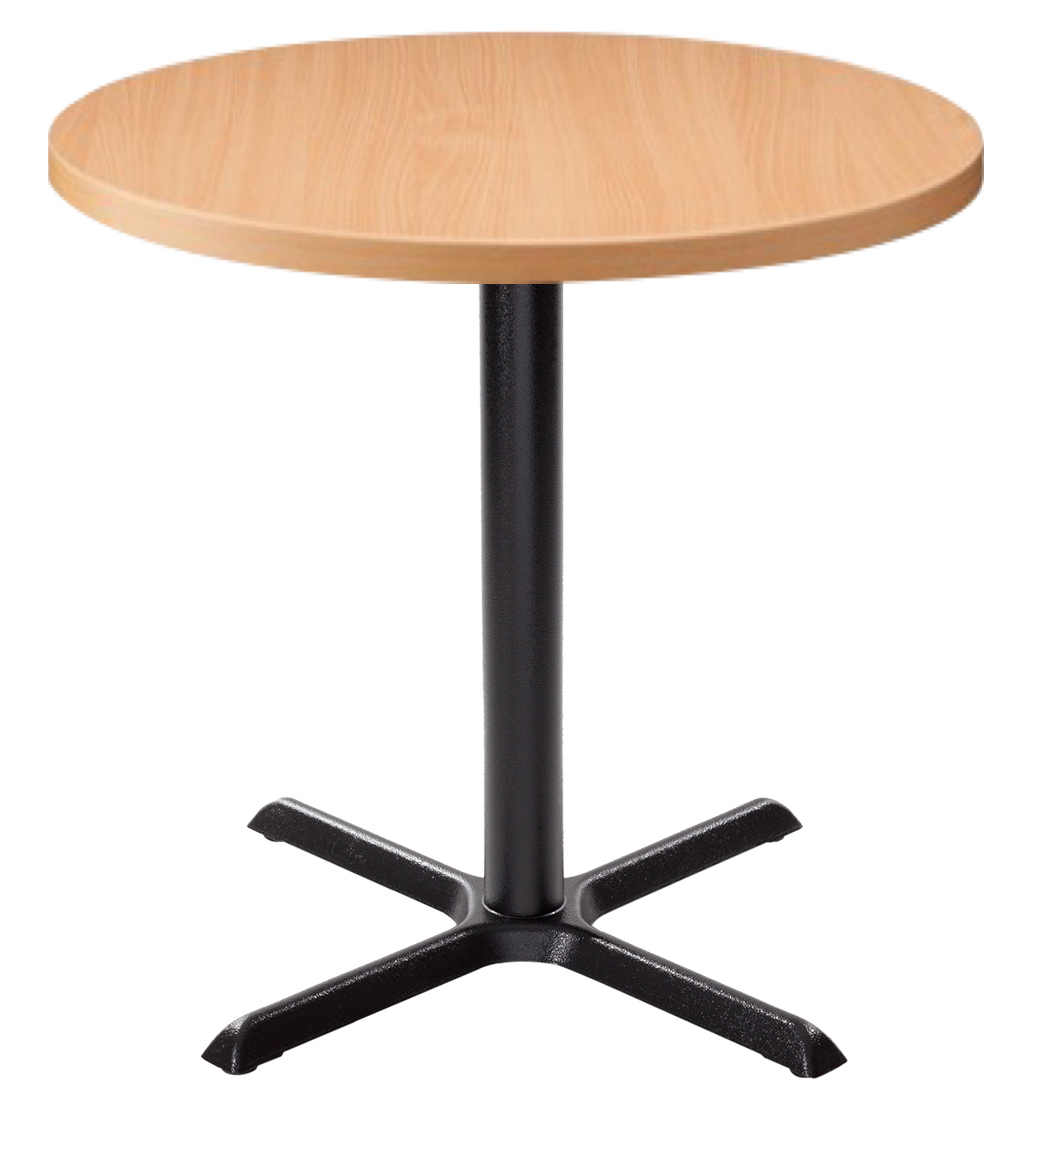 Orlando Round Dining Table - Beech With Black Column